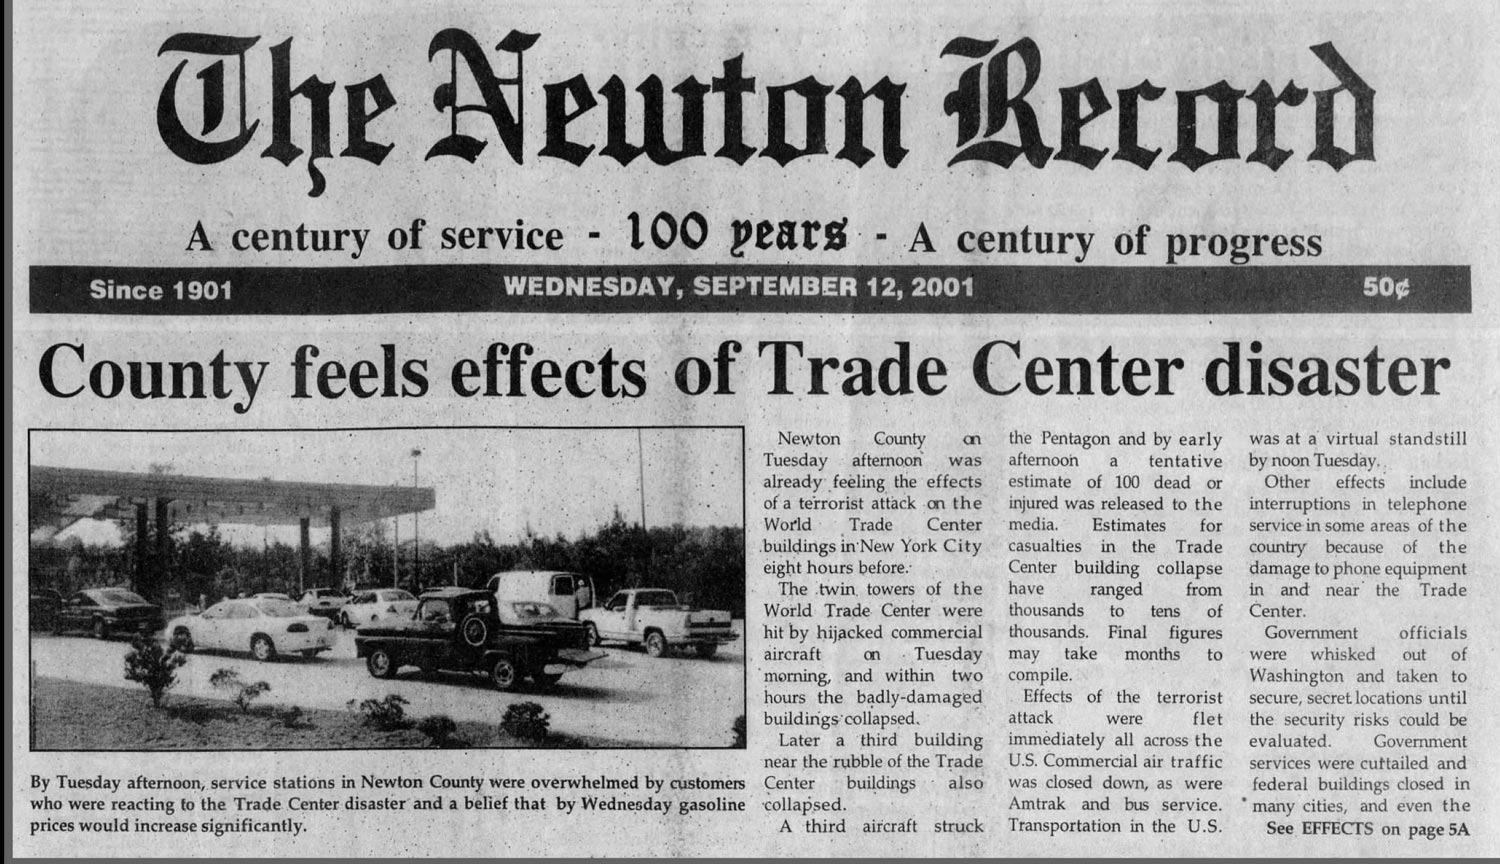 The Newton Record's top story from Sept. 12, 2001